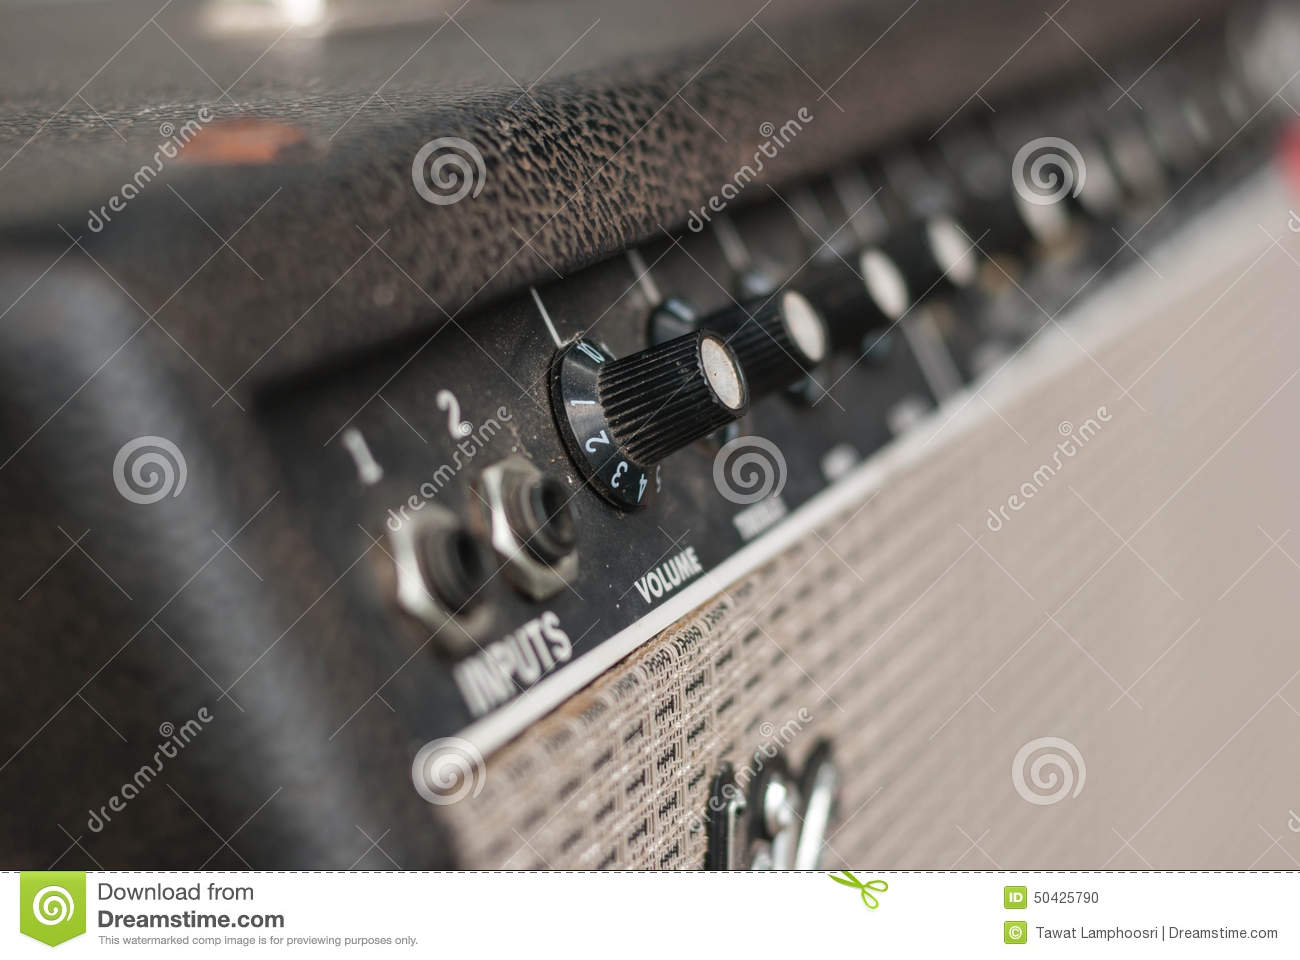 Knobs on a guitar amplifier.